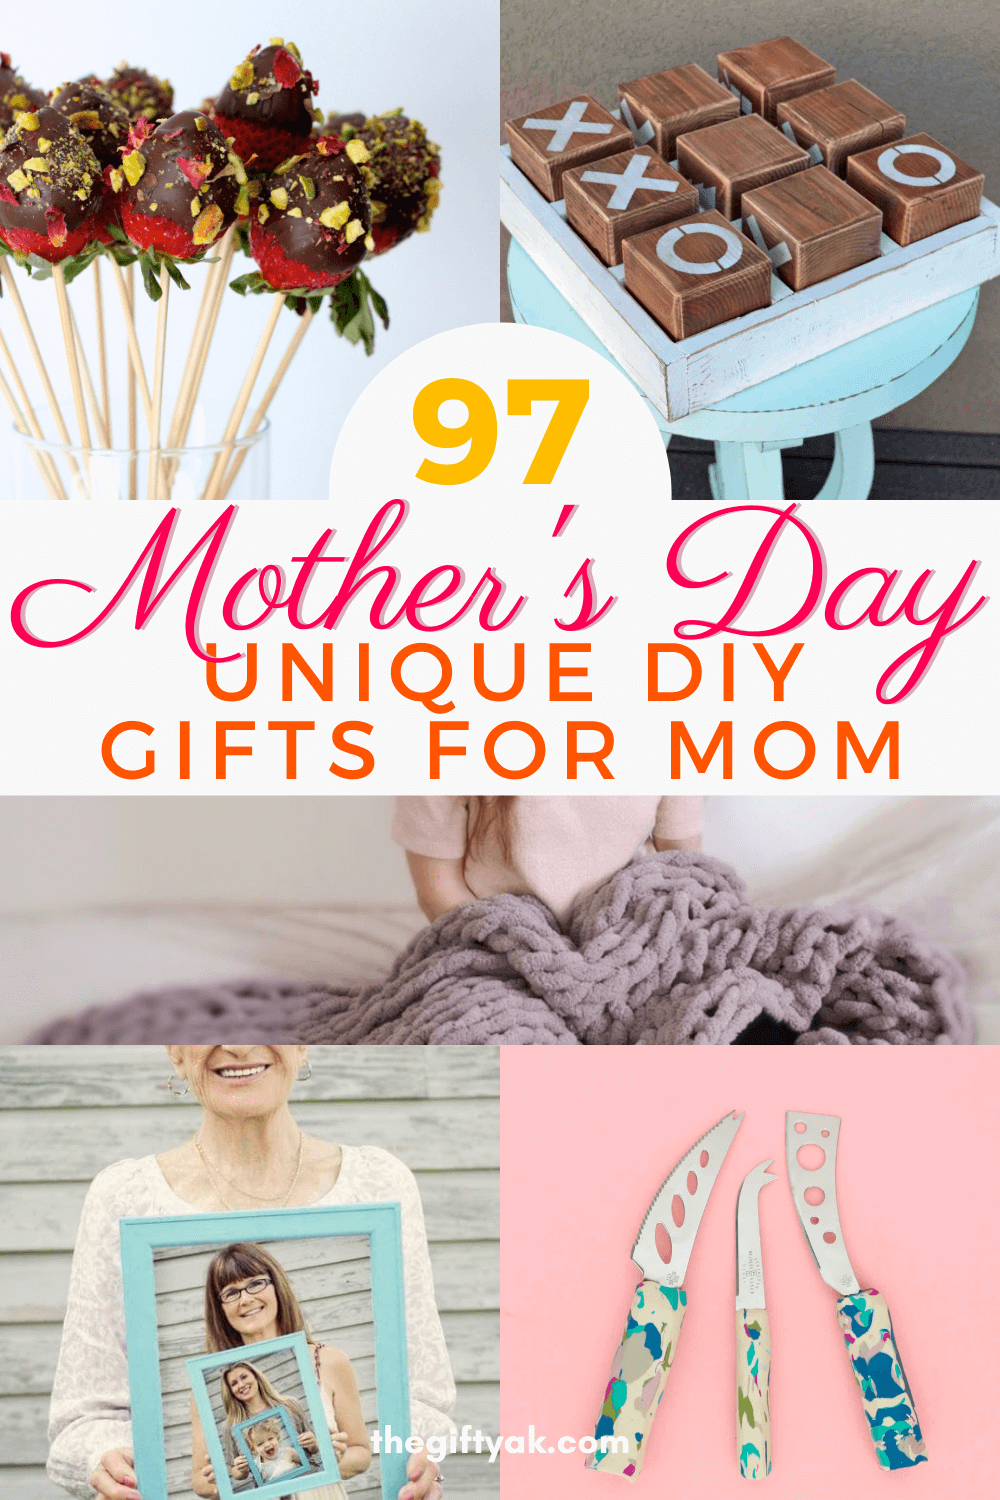 97 Unique Mothers Day DIY Homemade Craft Gift Inspiration Pinterest How to Make Tutorial Guide